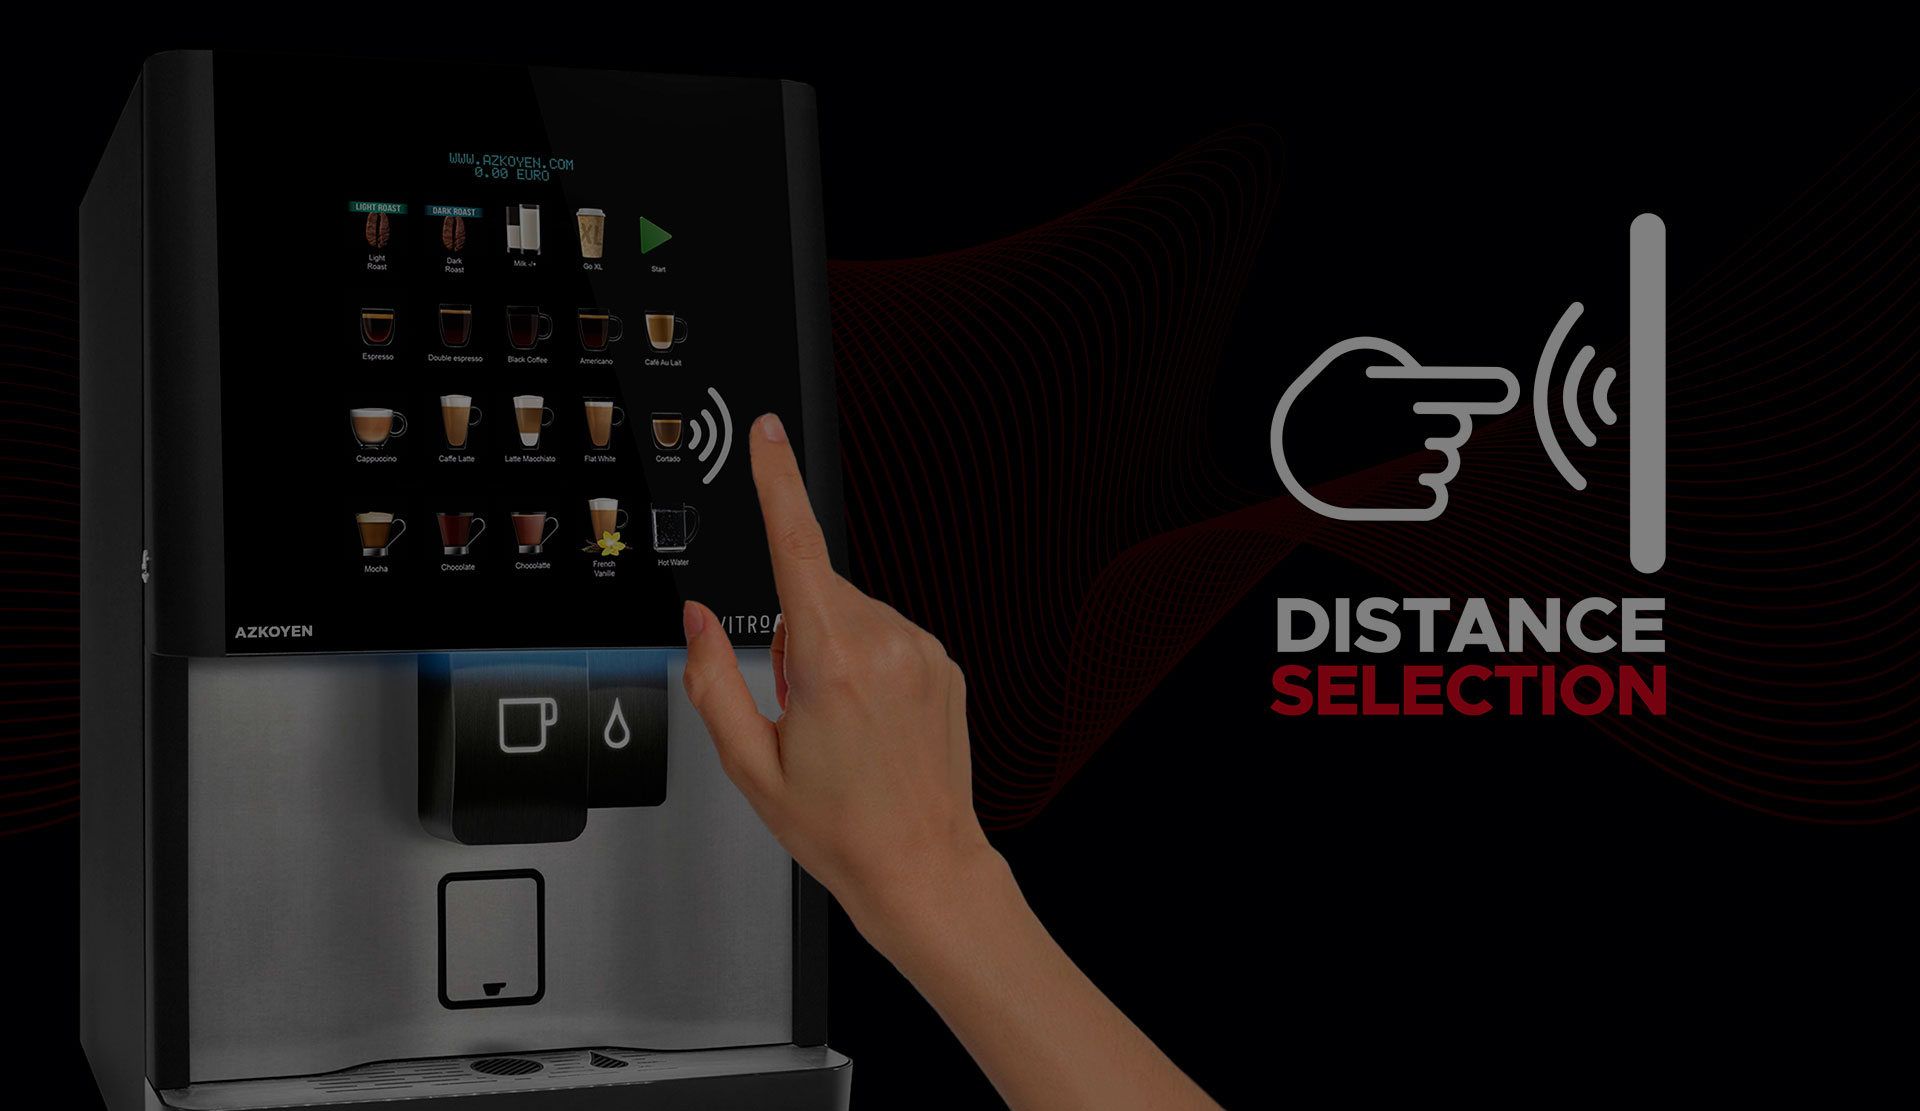 Azkoyen Group patents the Distance Selection technology which allows product selection in Coffetek automatic machines without the need to touch any surfaces